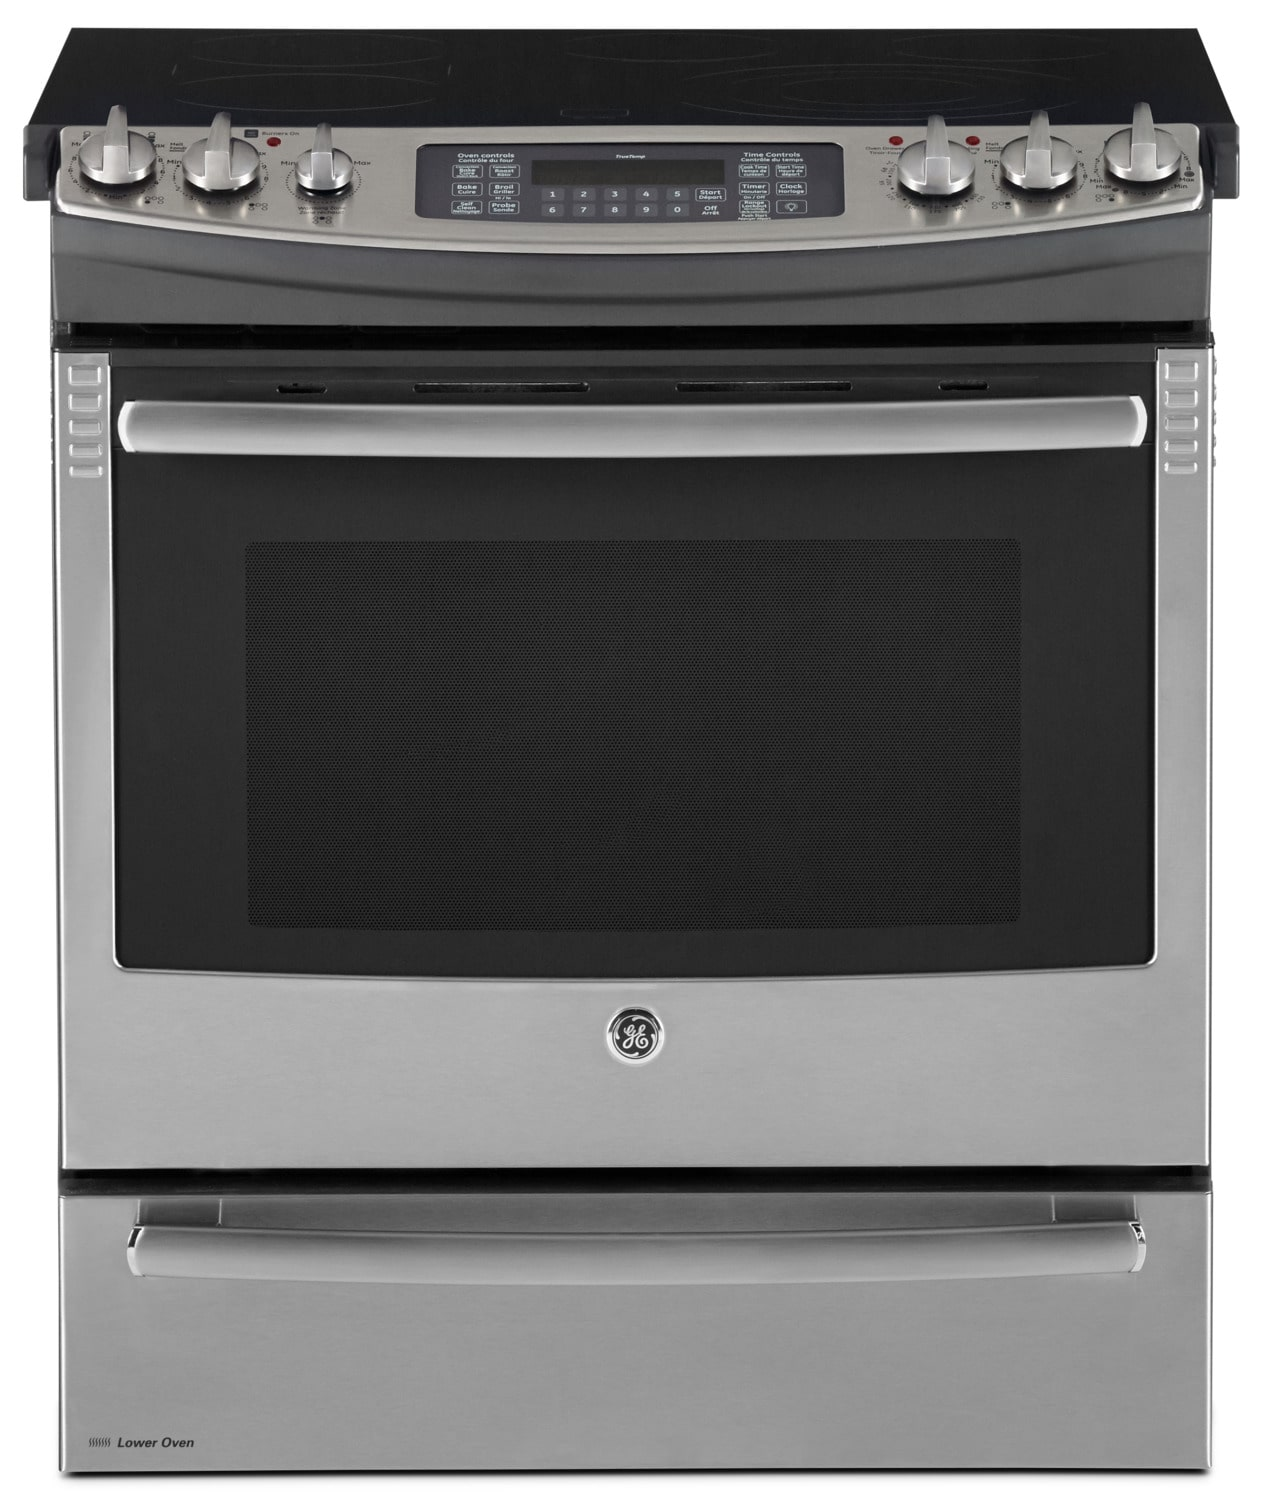 6.6 Cu. Ft. Slide-in Convection Range with Baking Drawer – PCS940SFSS